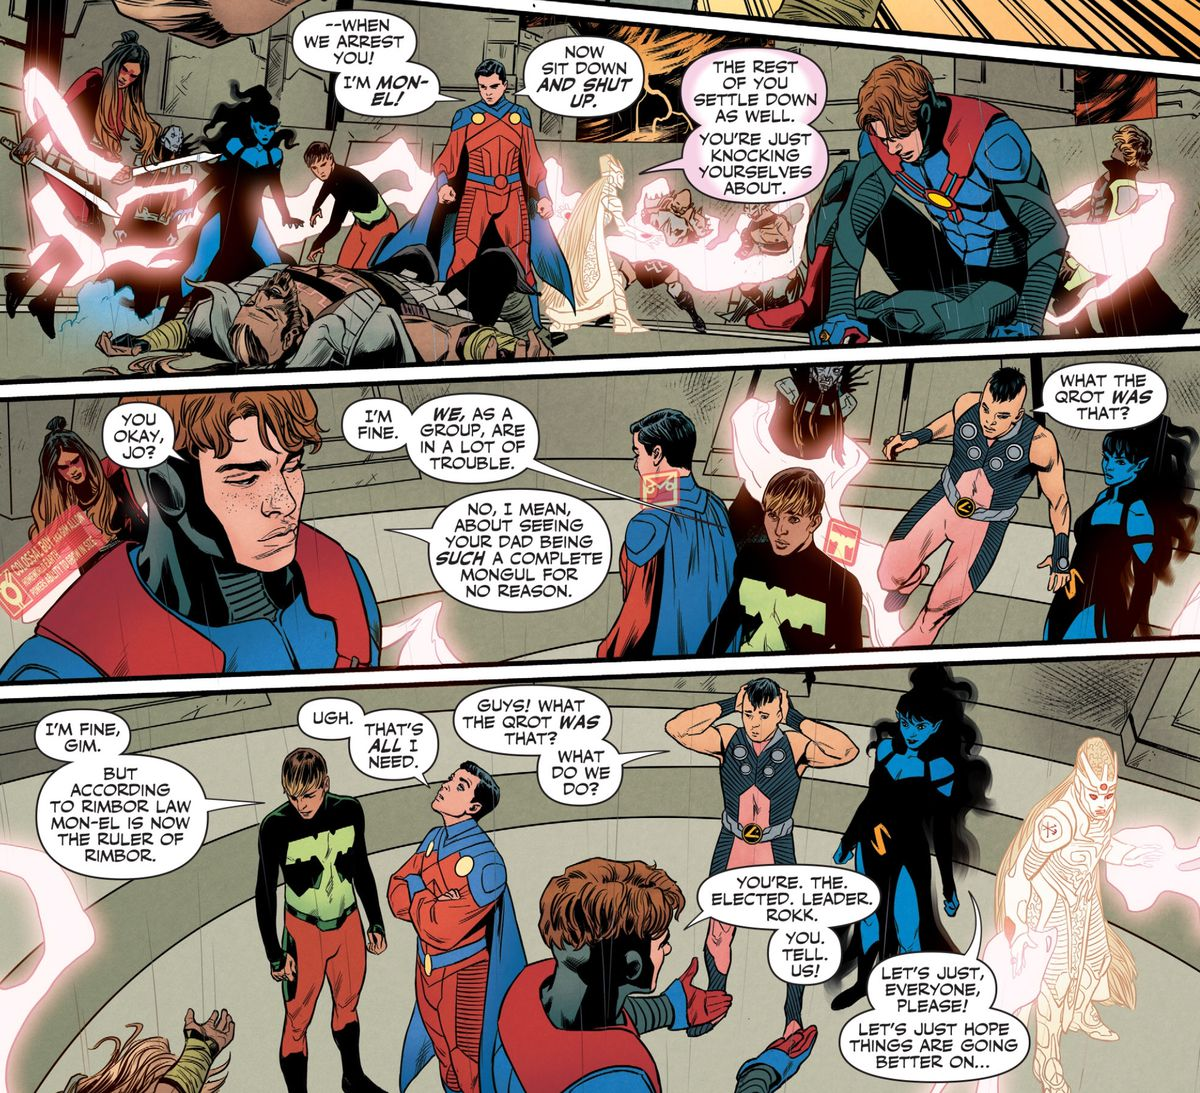 """A 6-hero team from the Legion of Super-Heroes attempts to diffuse a diplomatic mission gone wrong. Some sample dialogue: """"What the grot was that?"""" """"According to Rimbor law Mon-El is now the ruler of Rimbor"""" """"Ugh. That's ALL I need."""" in Legion of Super-Heroes #3, DC Comics (2020)."""